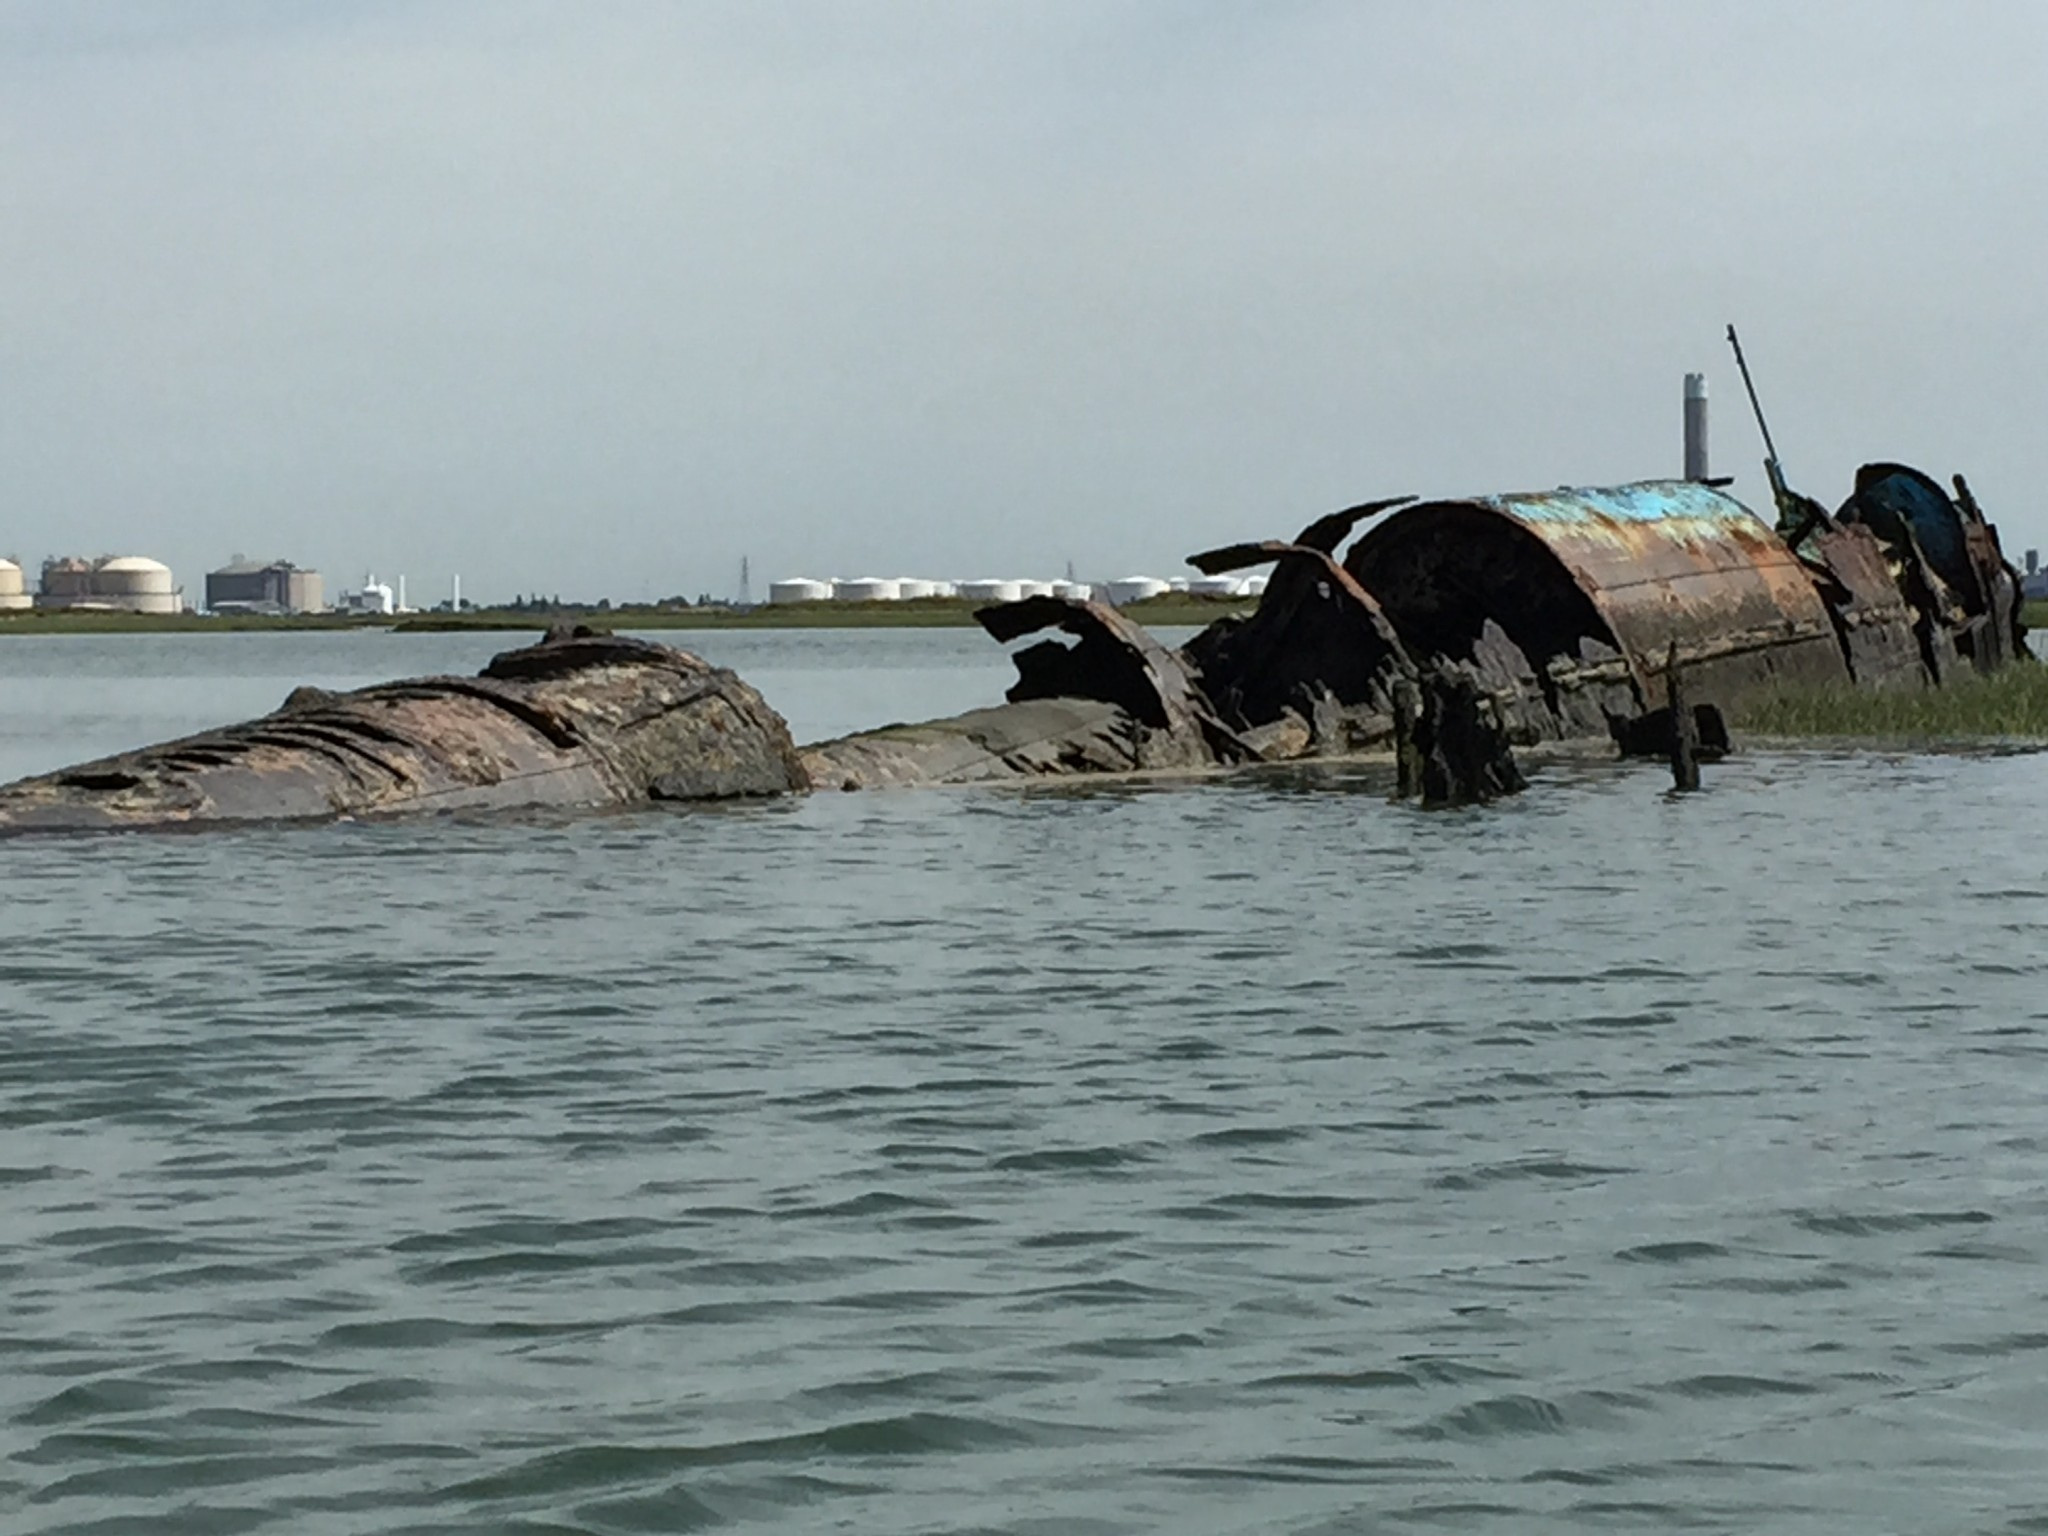 Have You Visited The Ww1 German Submarine Wreck